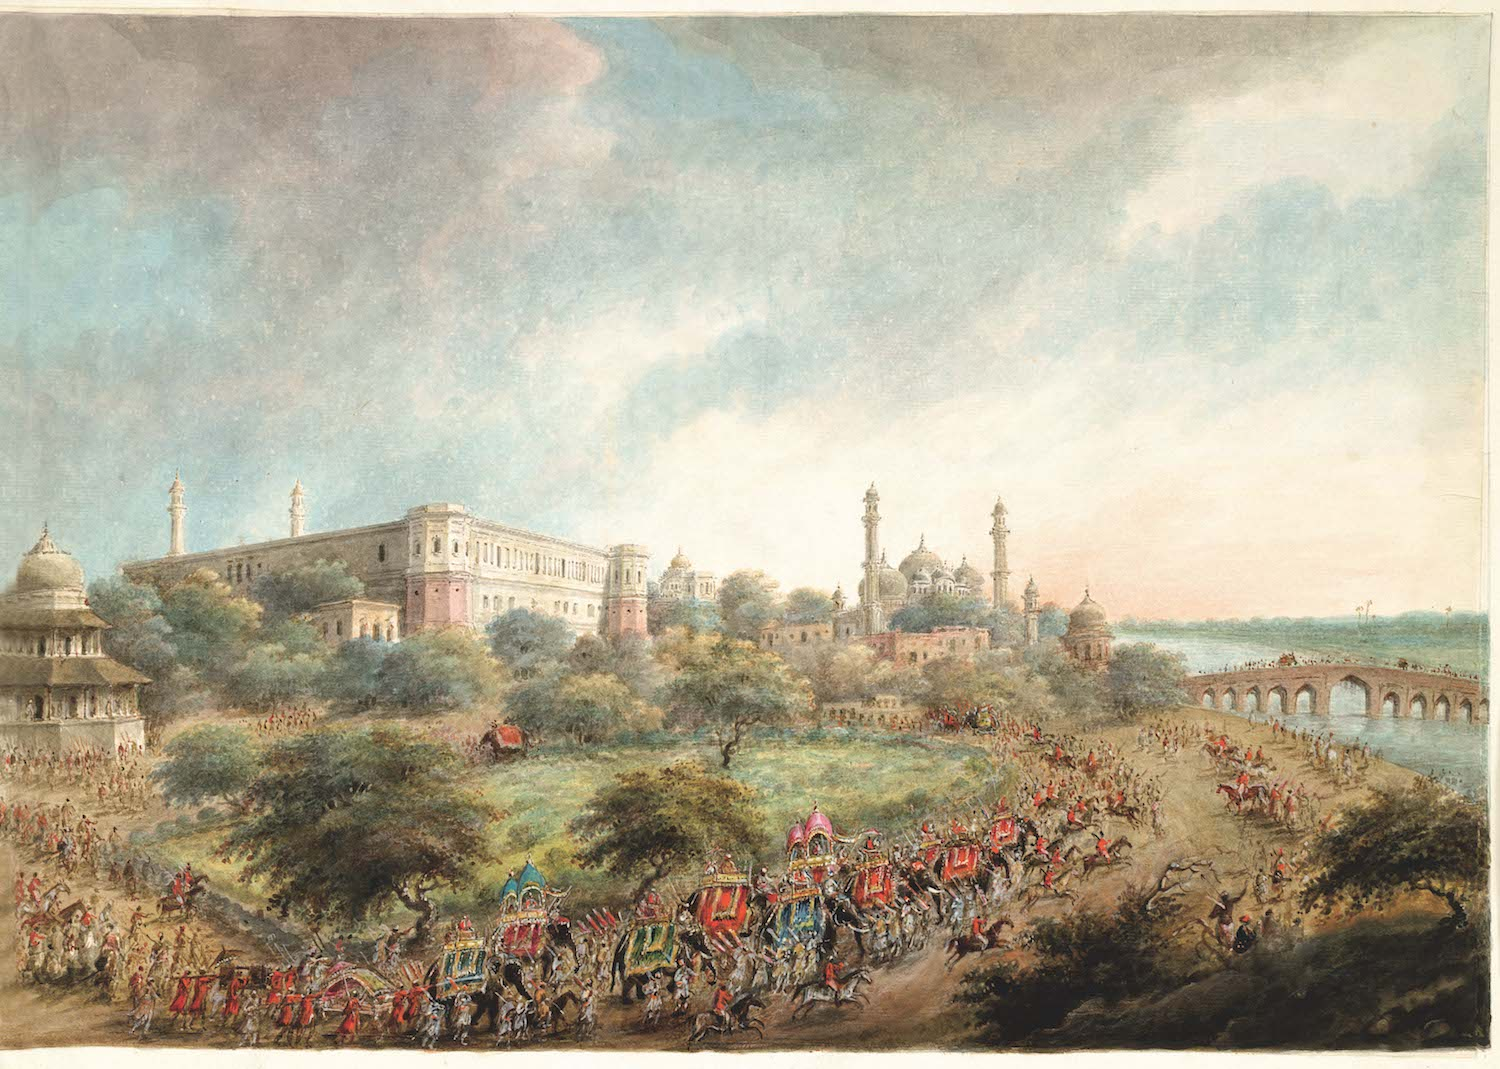 Lord Hastings and the Nawab Vizier entering Lucknow on elephant-back.